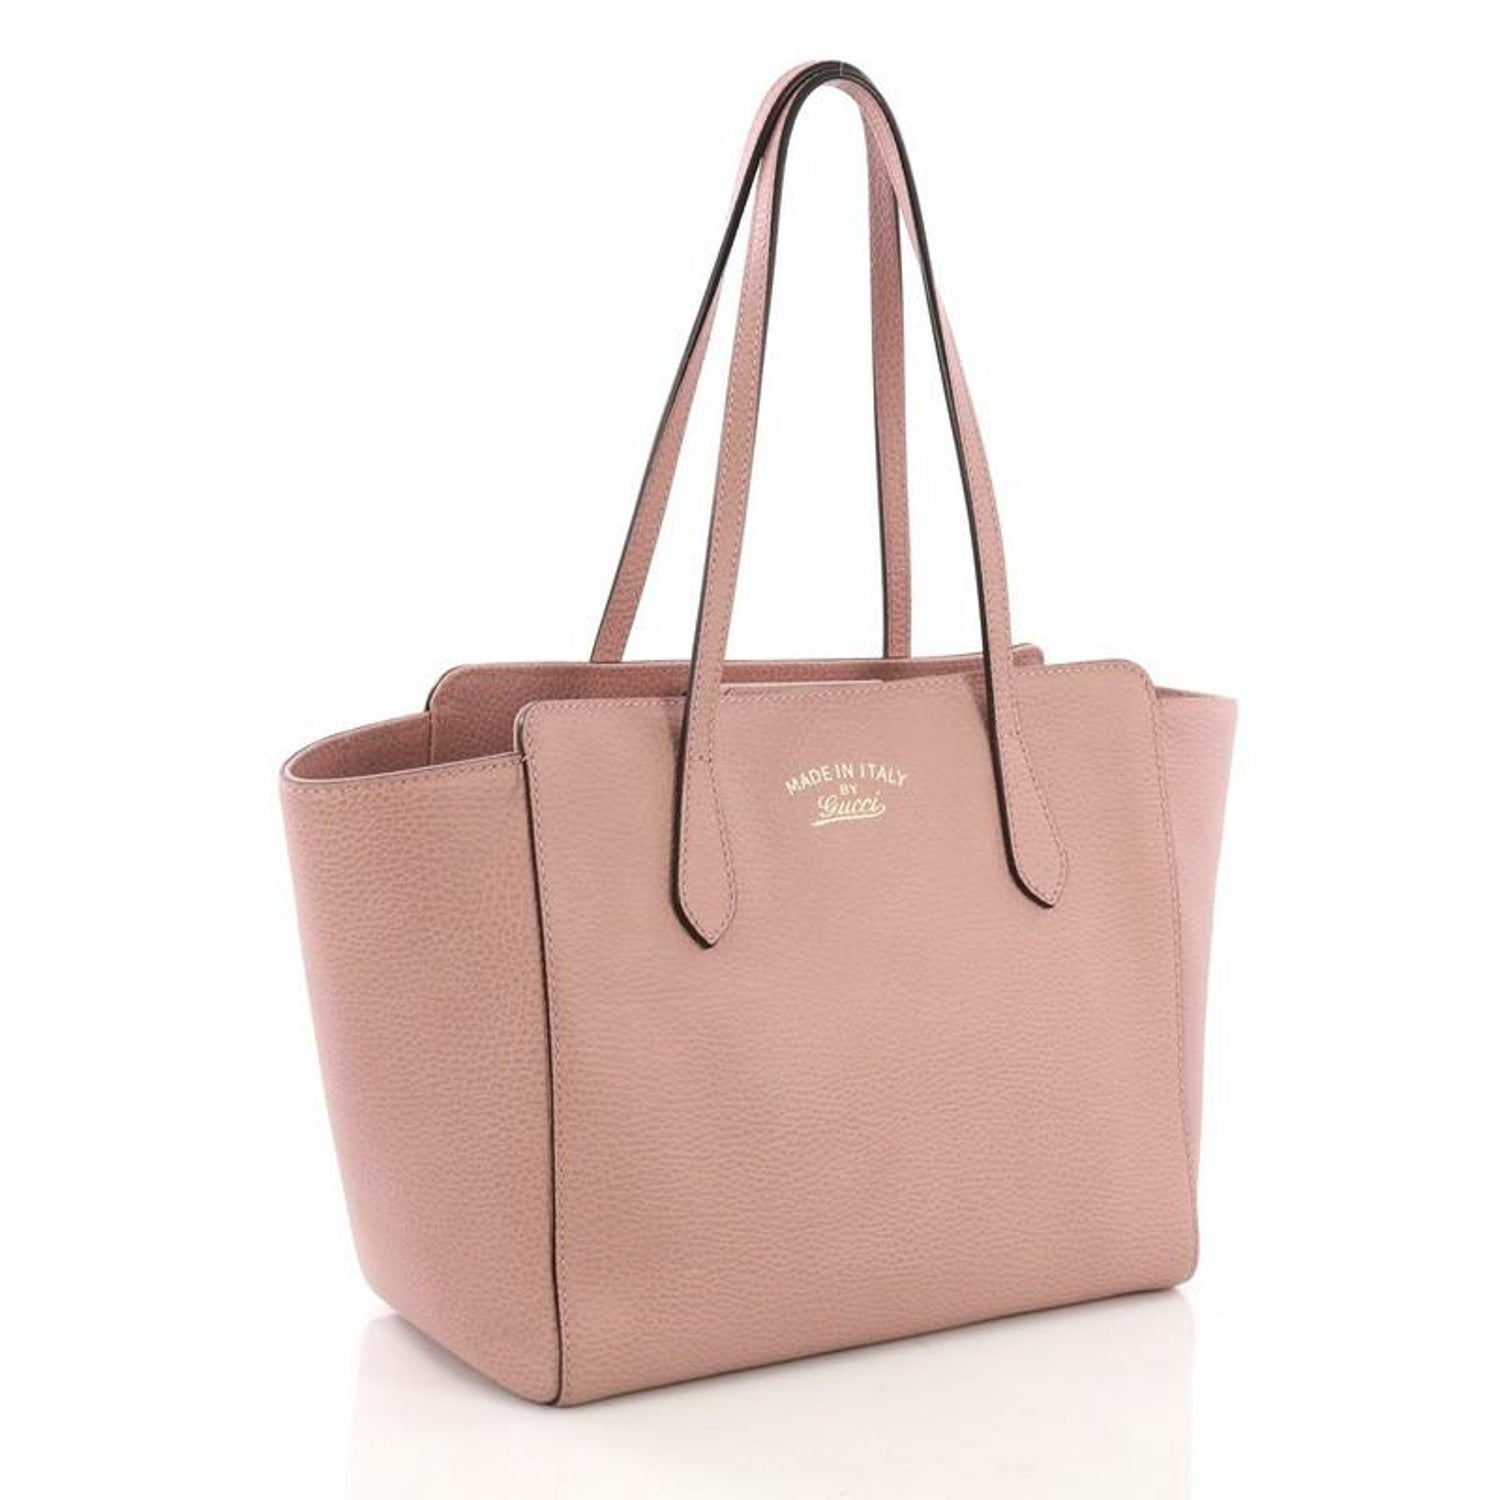 08756c1a32f Gucci Swing Tote Leather Small at 1stdibs